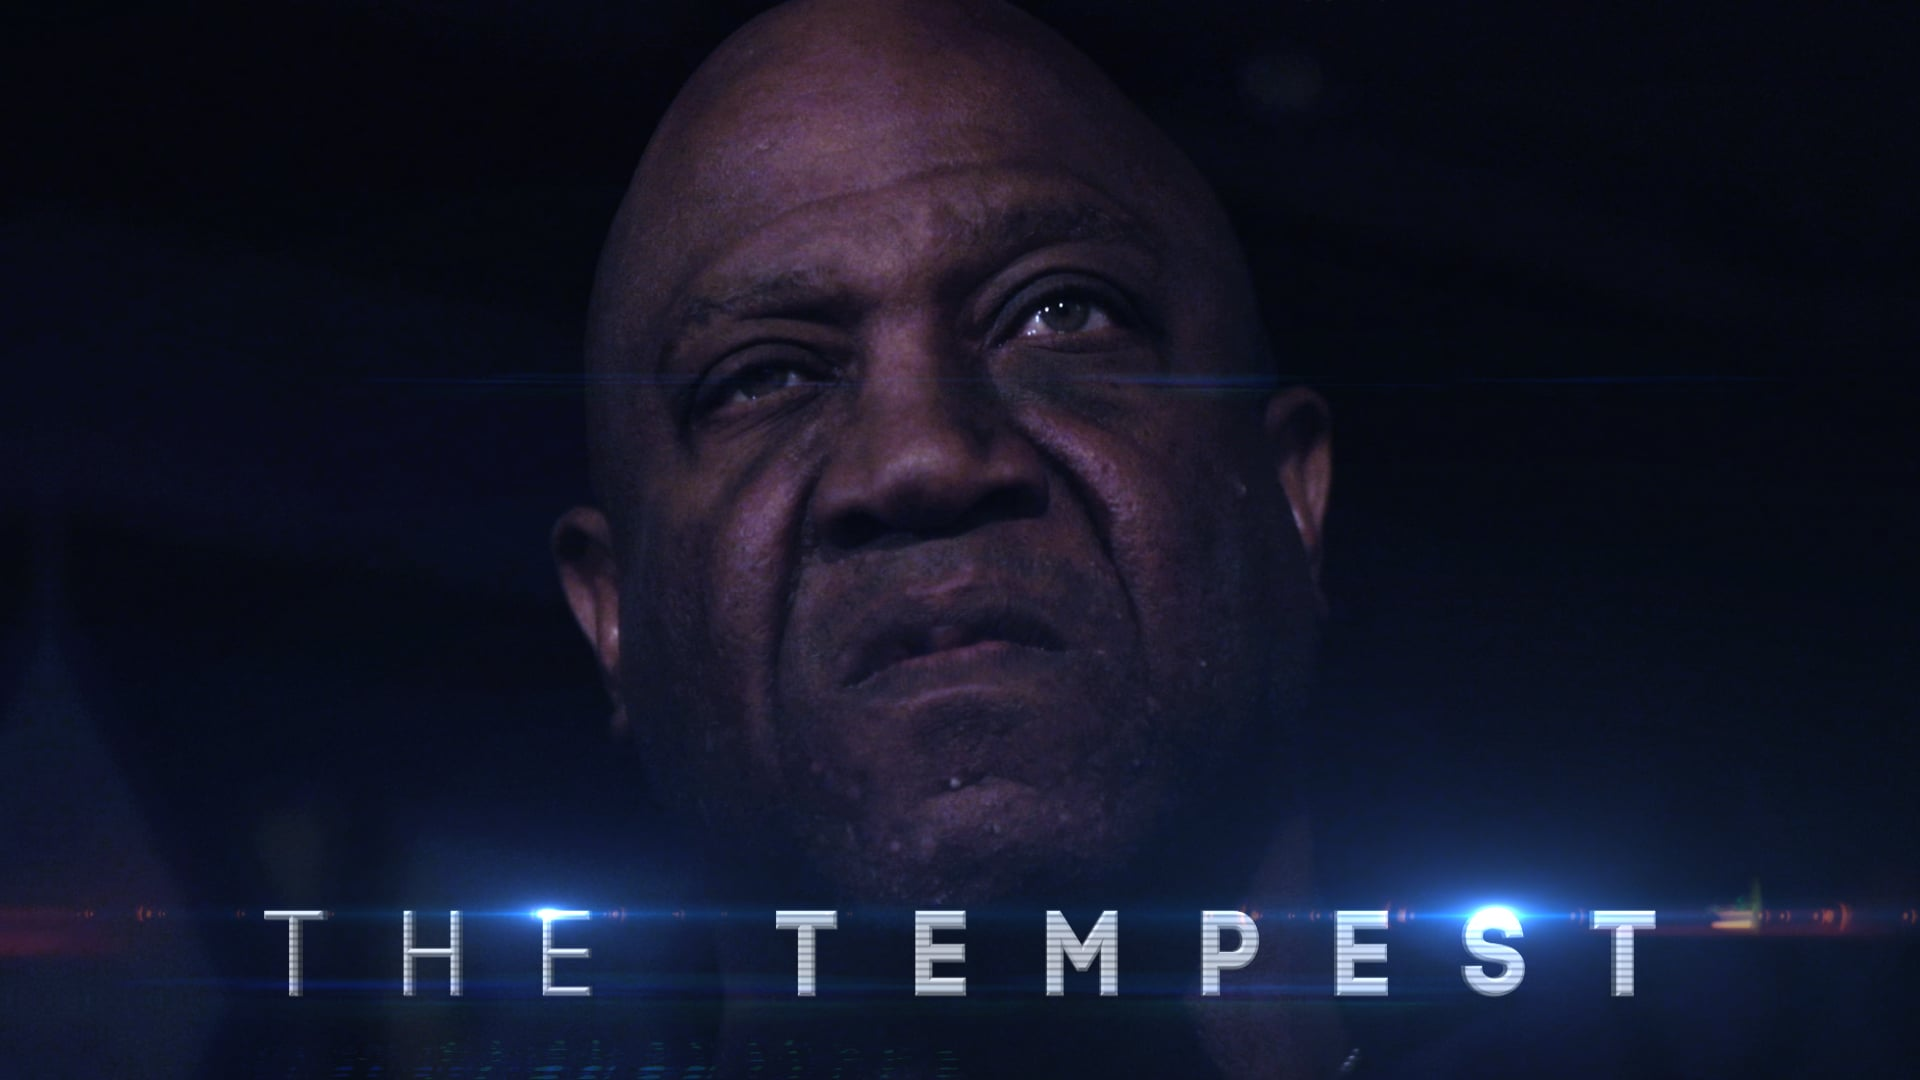 The Tempest - Episode 1 - A Man's Worth